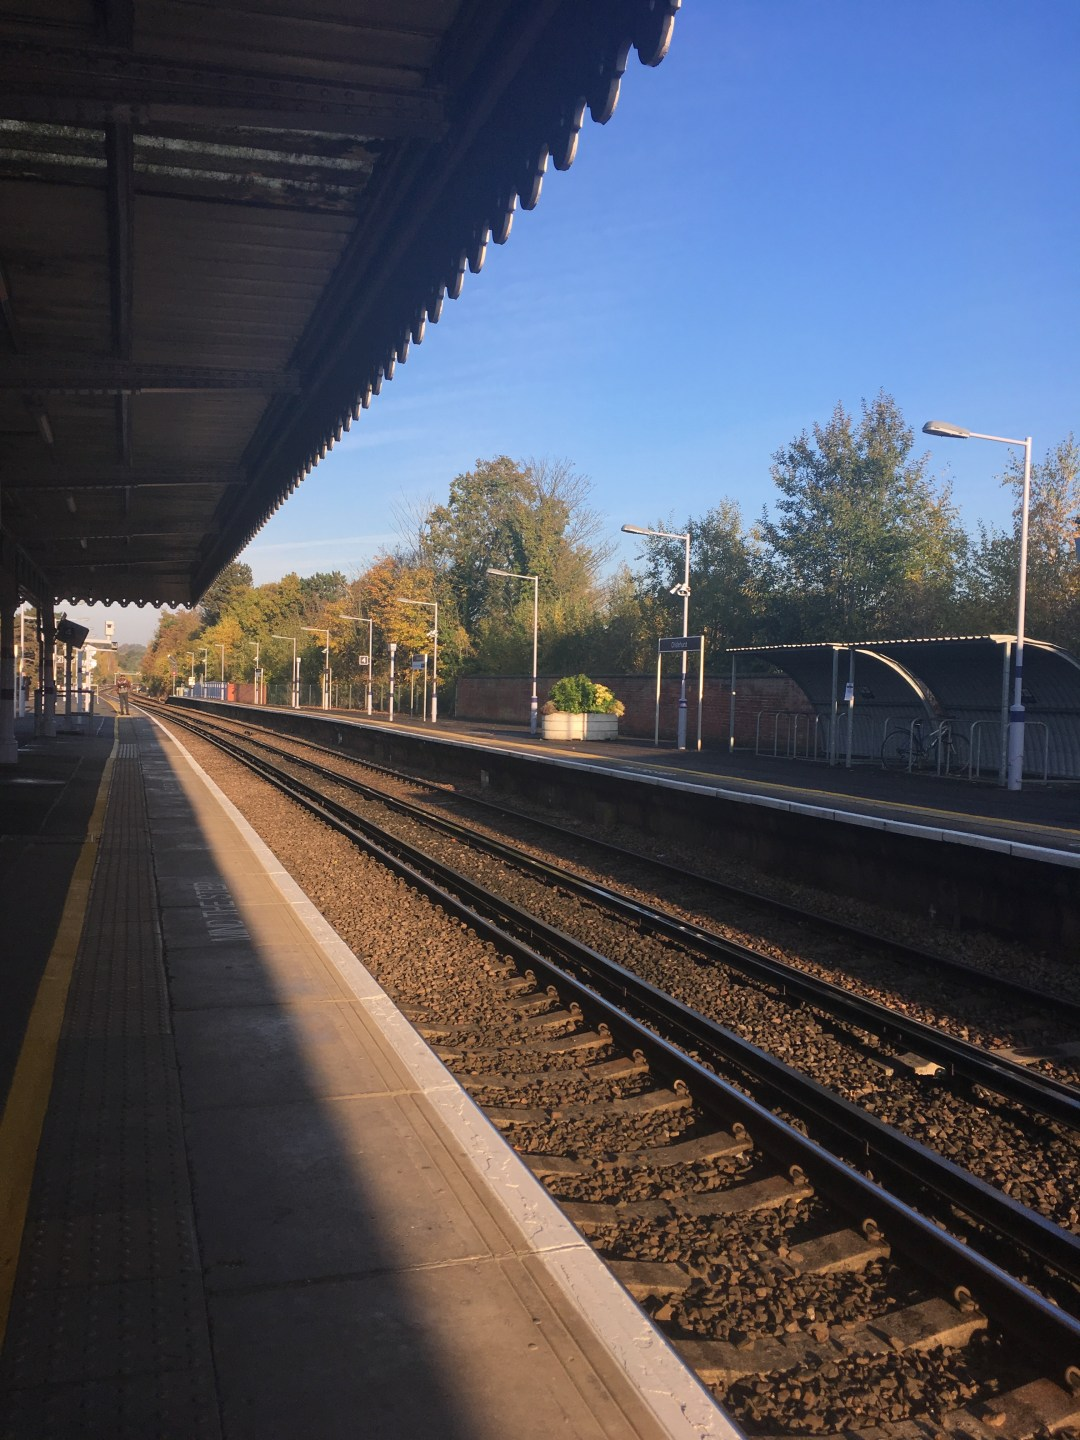 Blue skies and an empty station platform in London